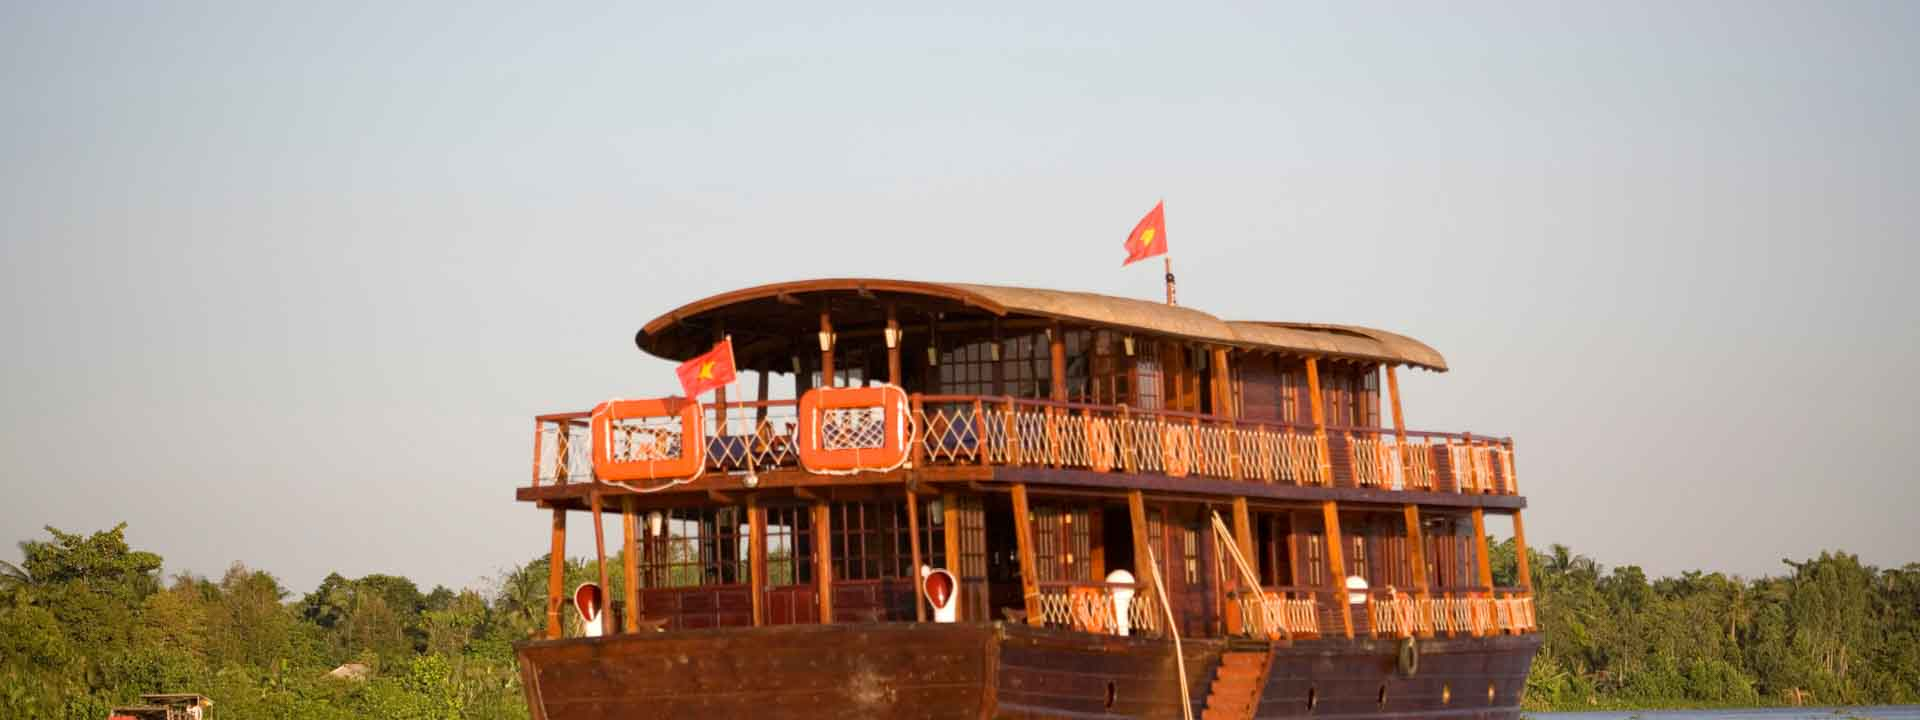 Mekong River Cruise in Style 3 days